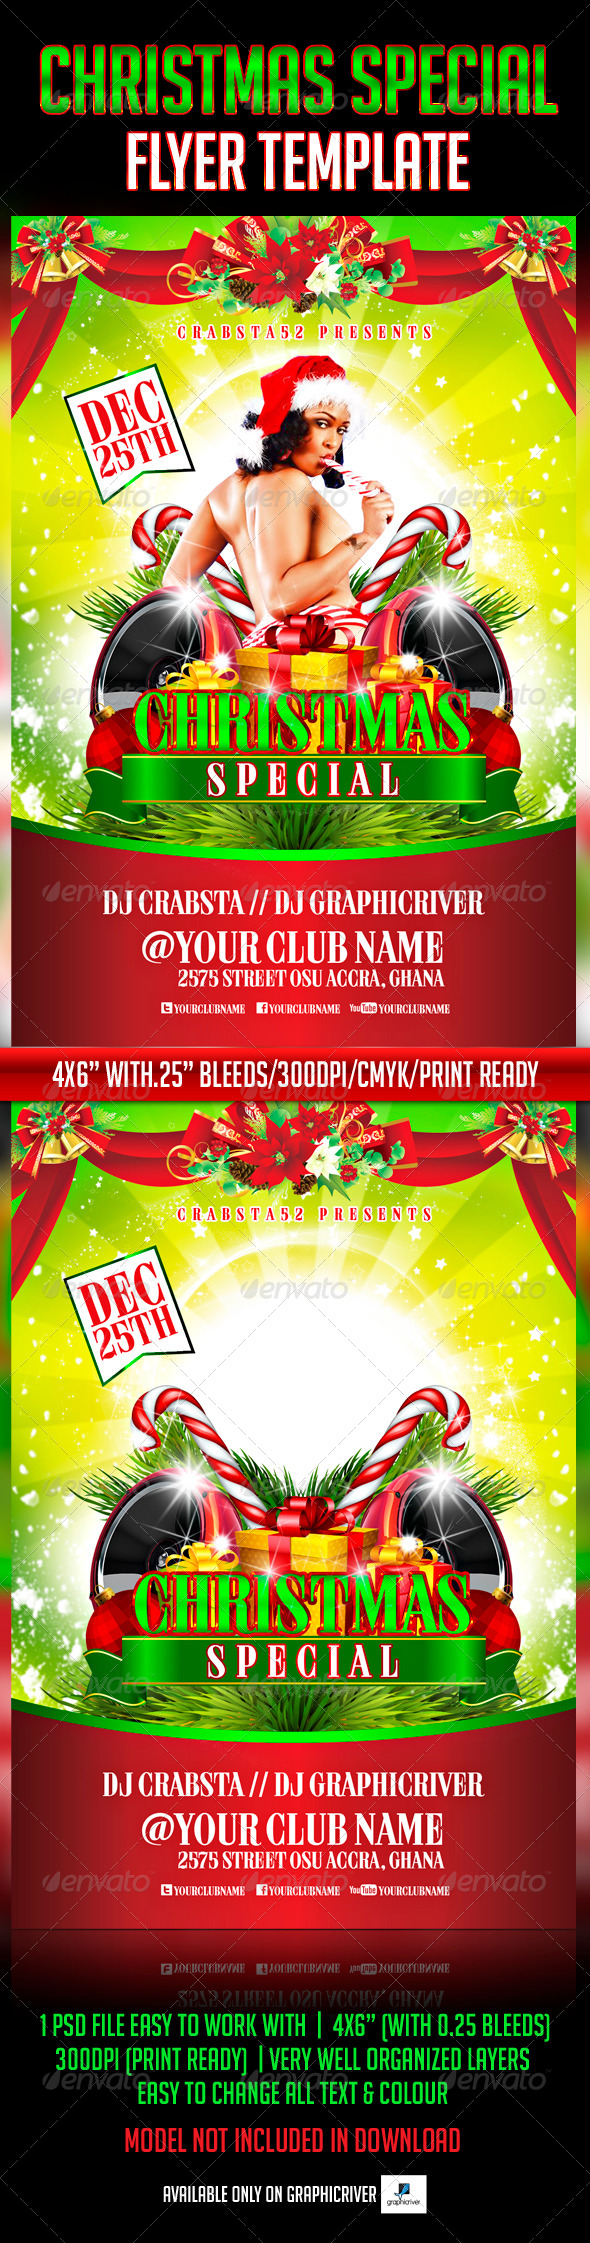 Christmas Special Flyer Template - Events Flyers